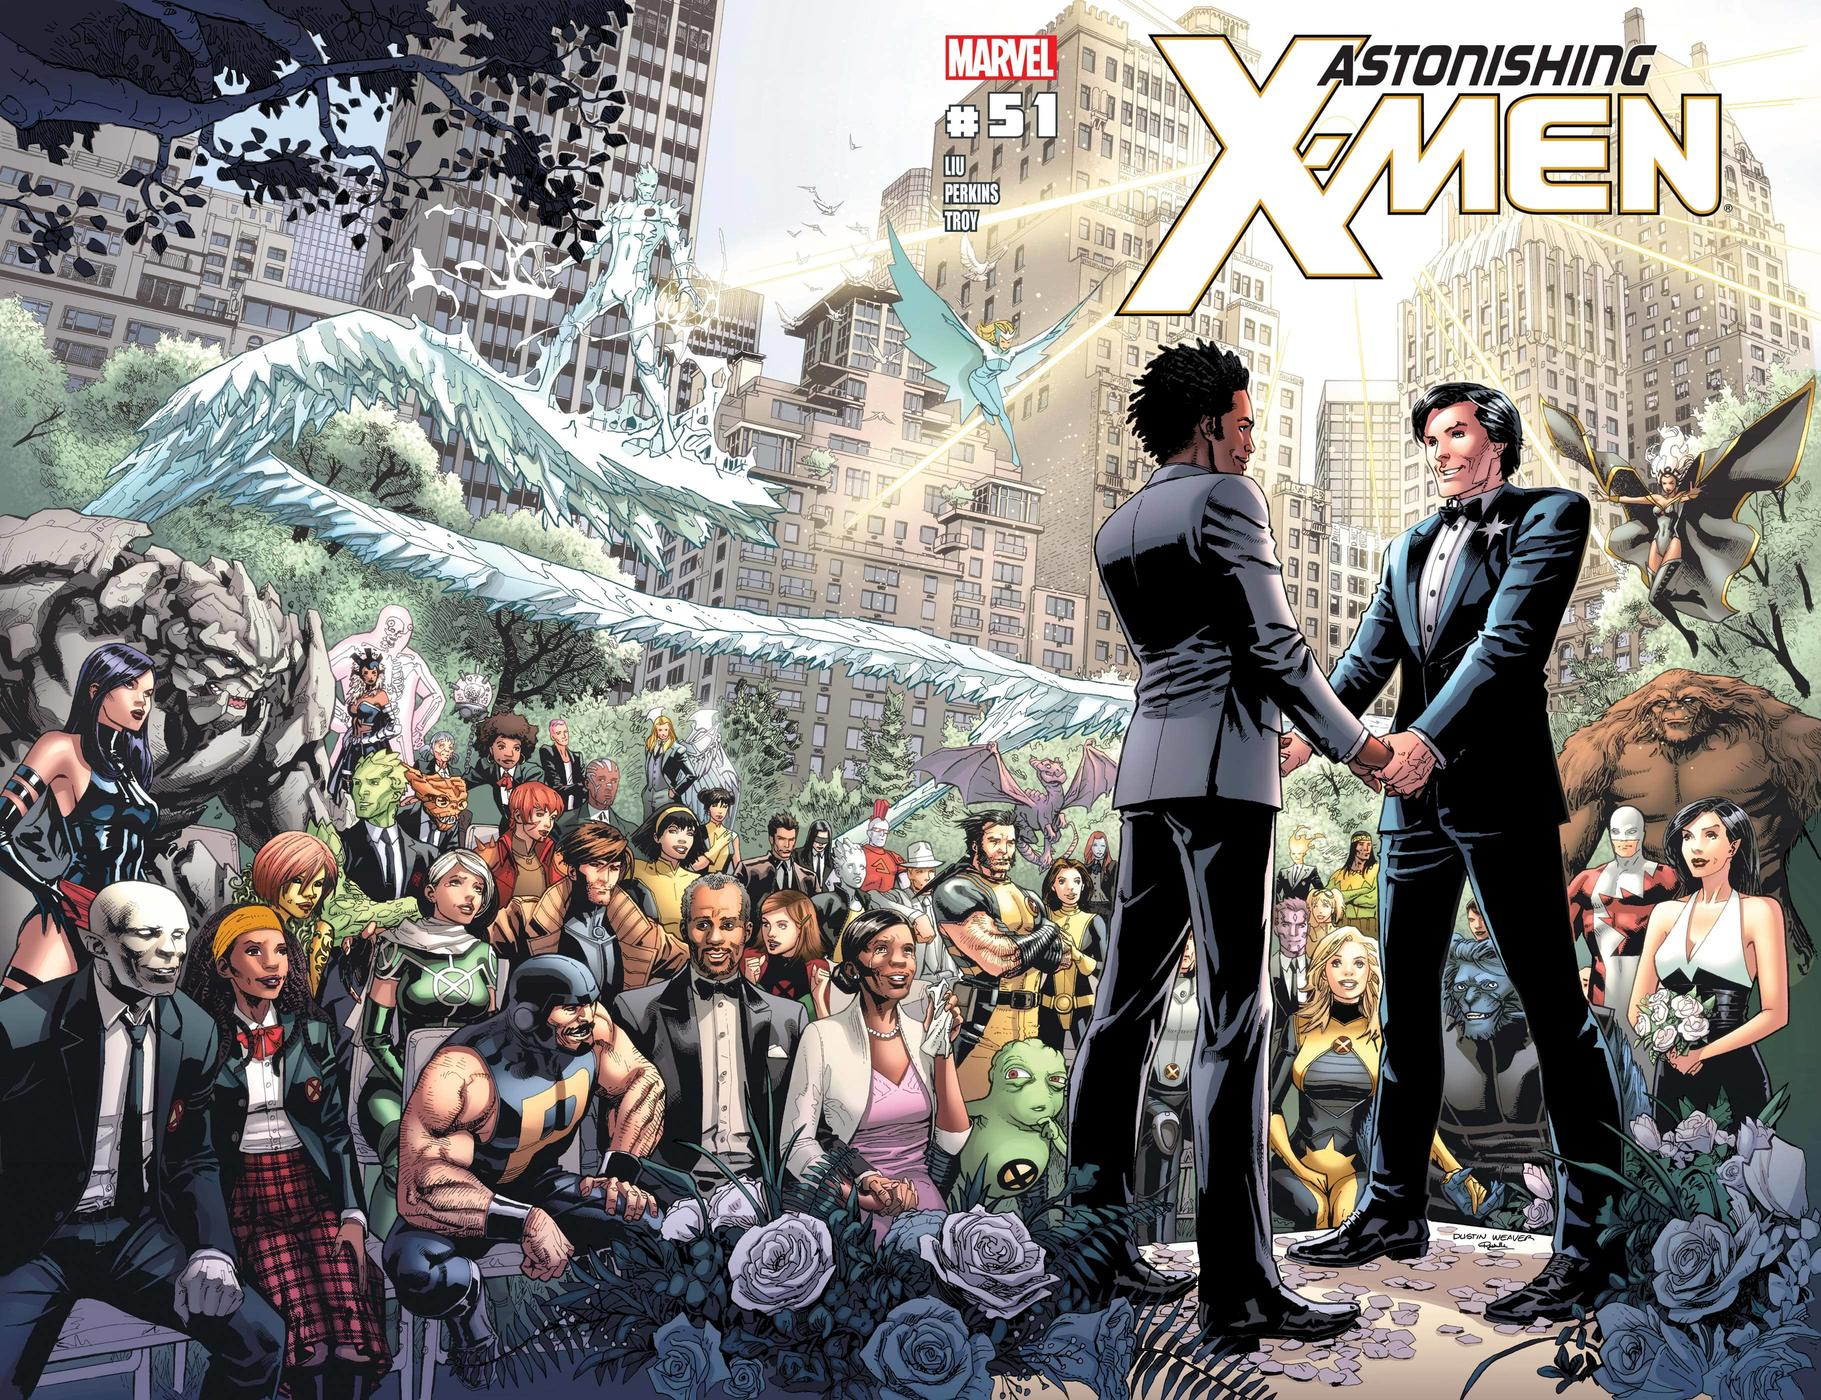 ASTONISHING X-MEN (2004) #51